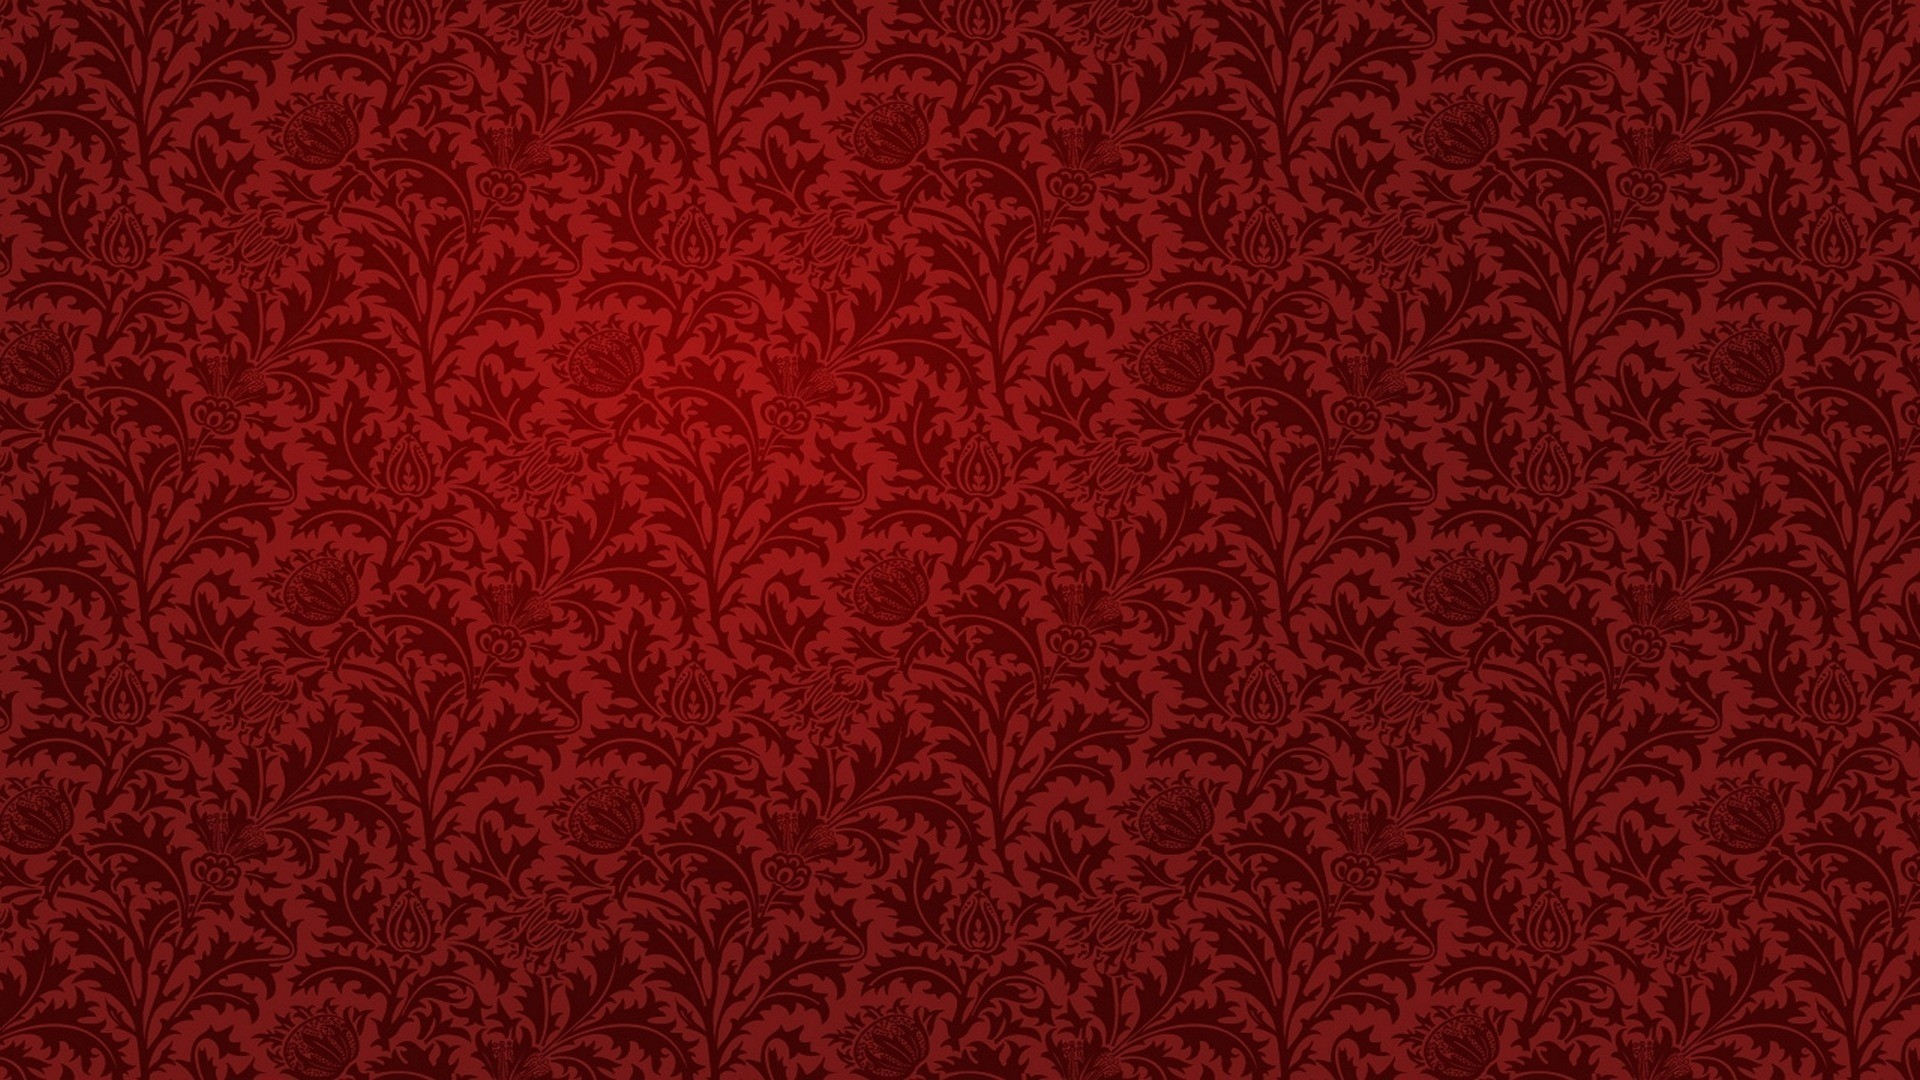 Red Patterns Wallpaper 1920x1080 Red Patterns 1920x1080